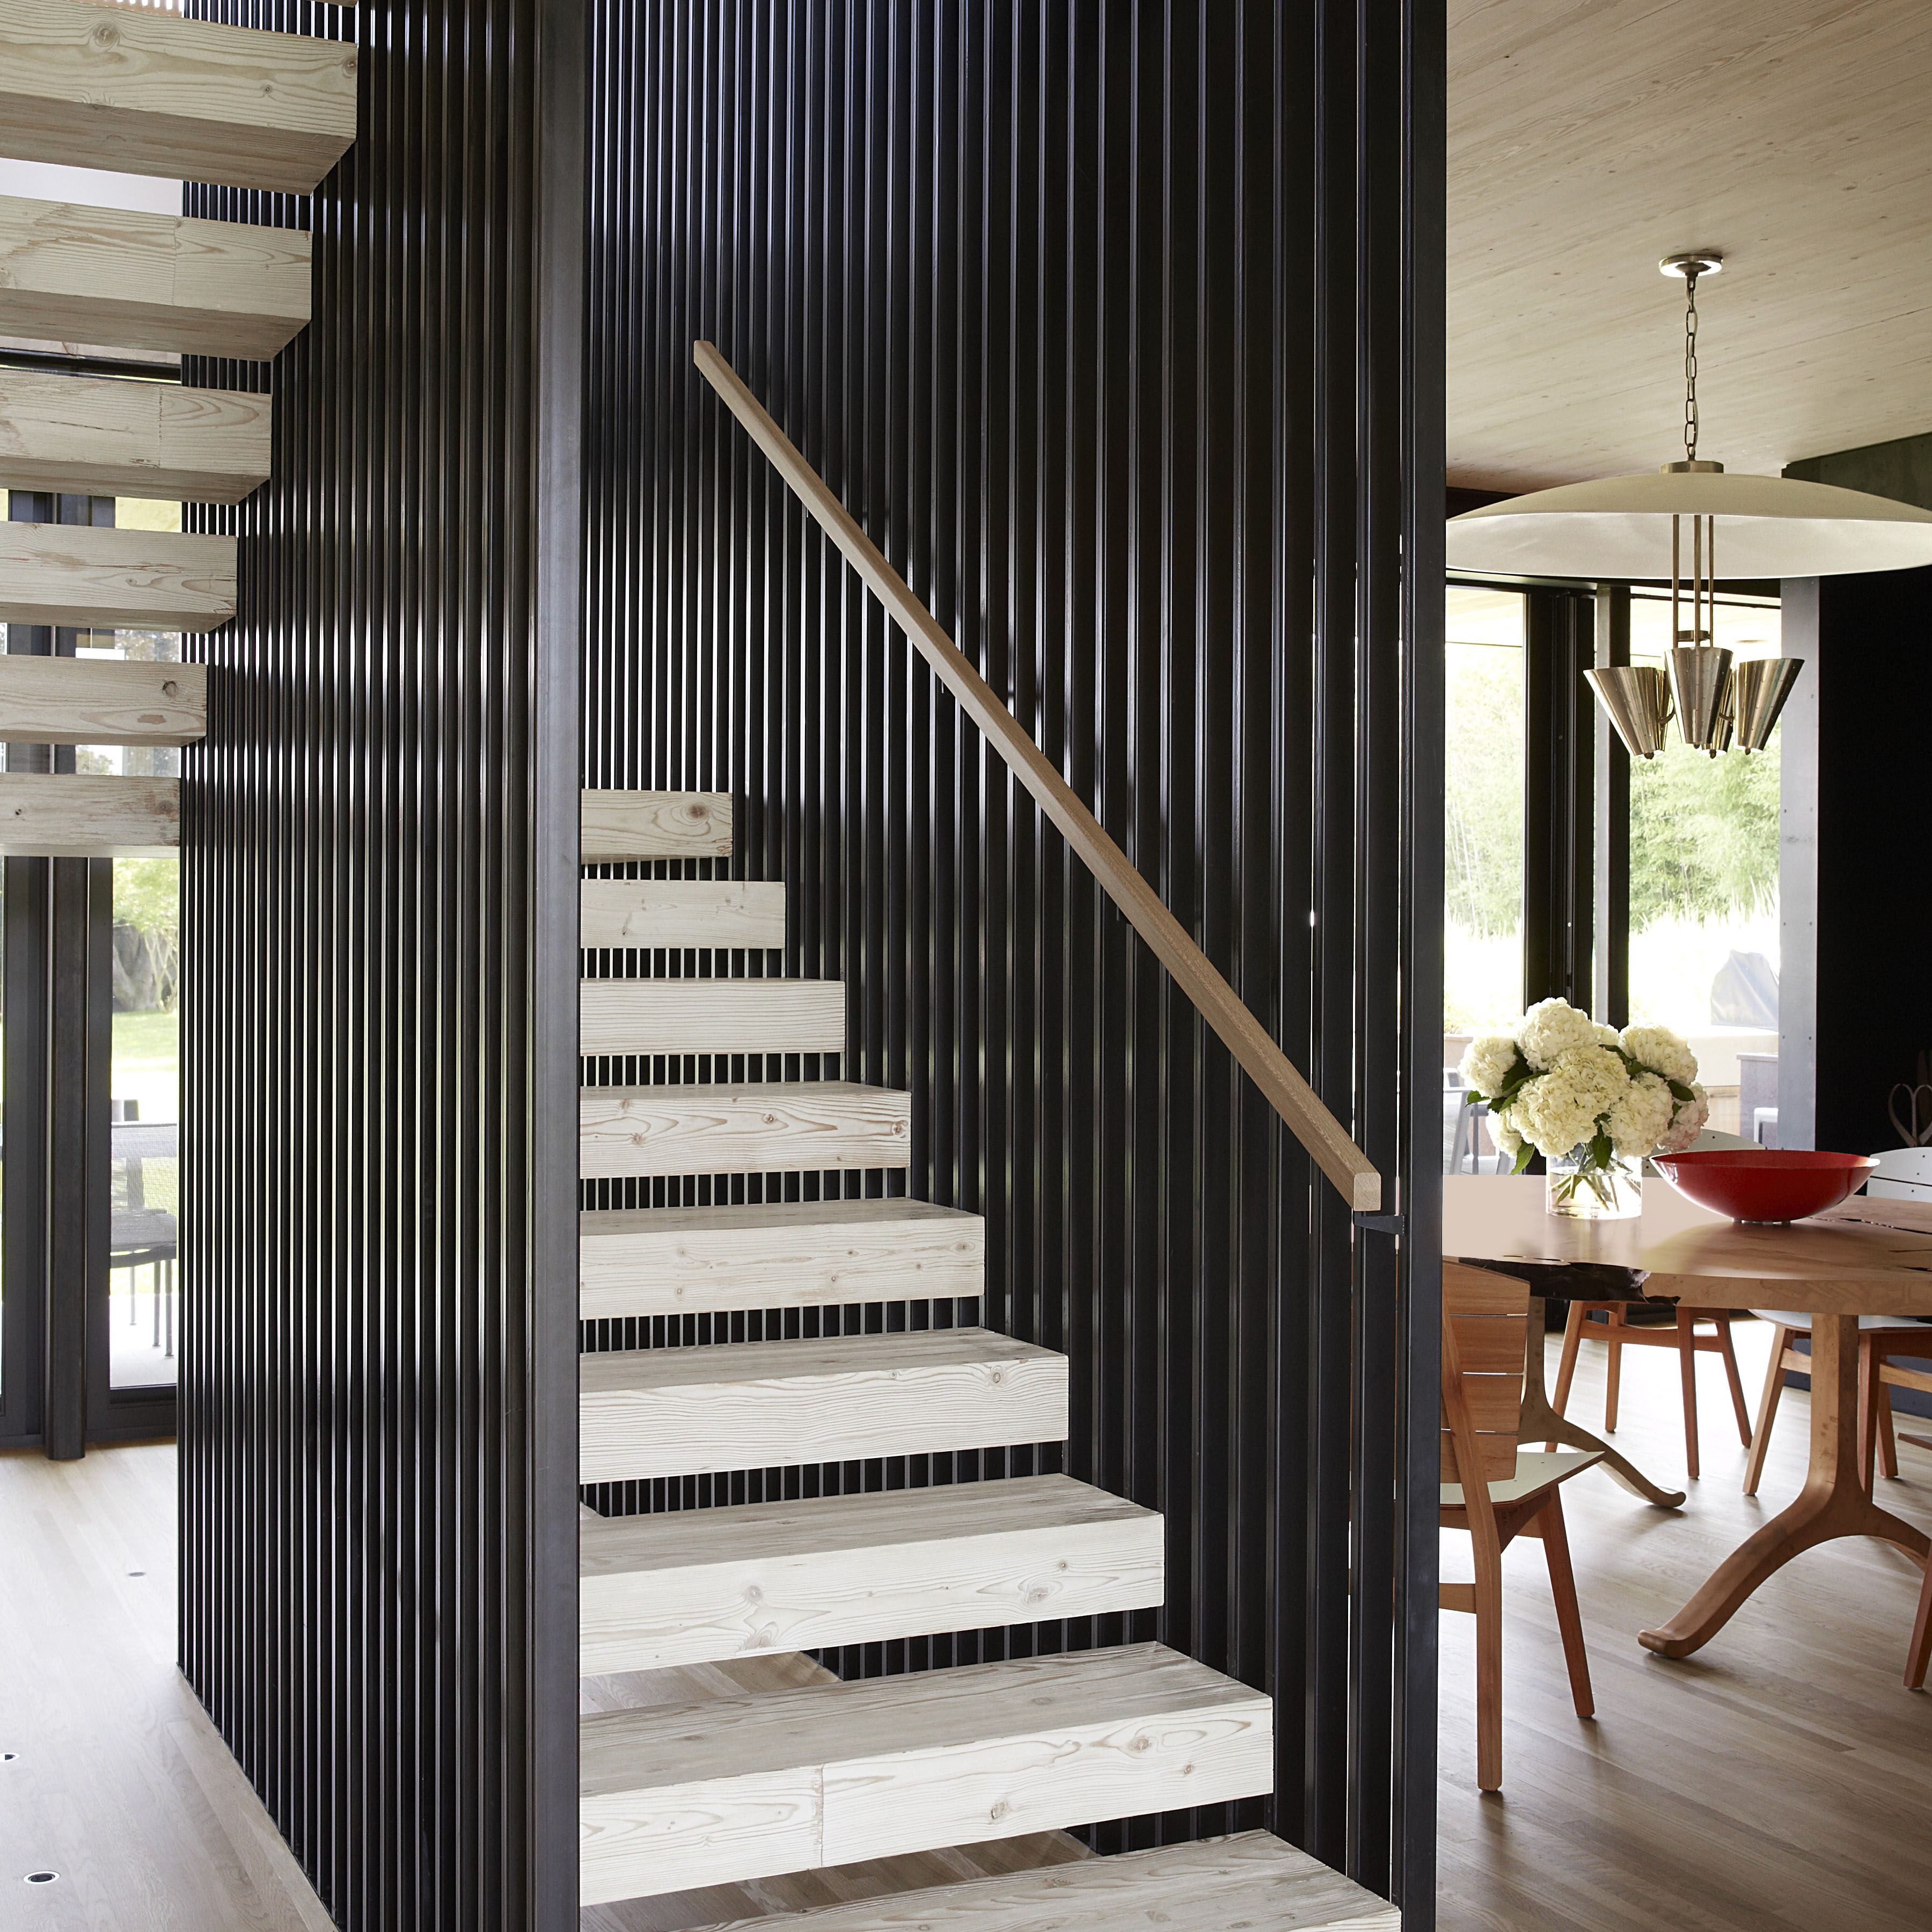 Chairs by Carlos Motta for Espasso surround a dining table by BDDW&#x3B; the 1950s American pendant originally hung in a Connecticut school, and the staircase is made of Douglas fir steps encased by cedar slats.